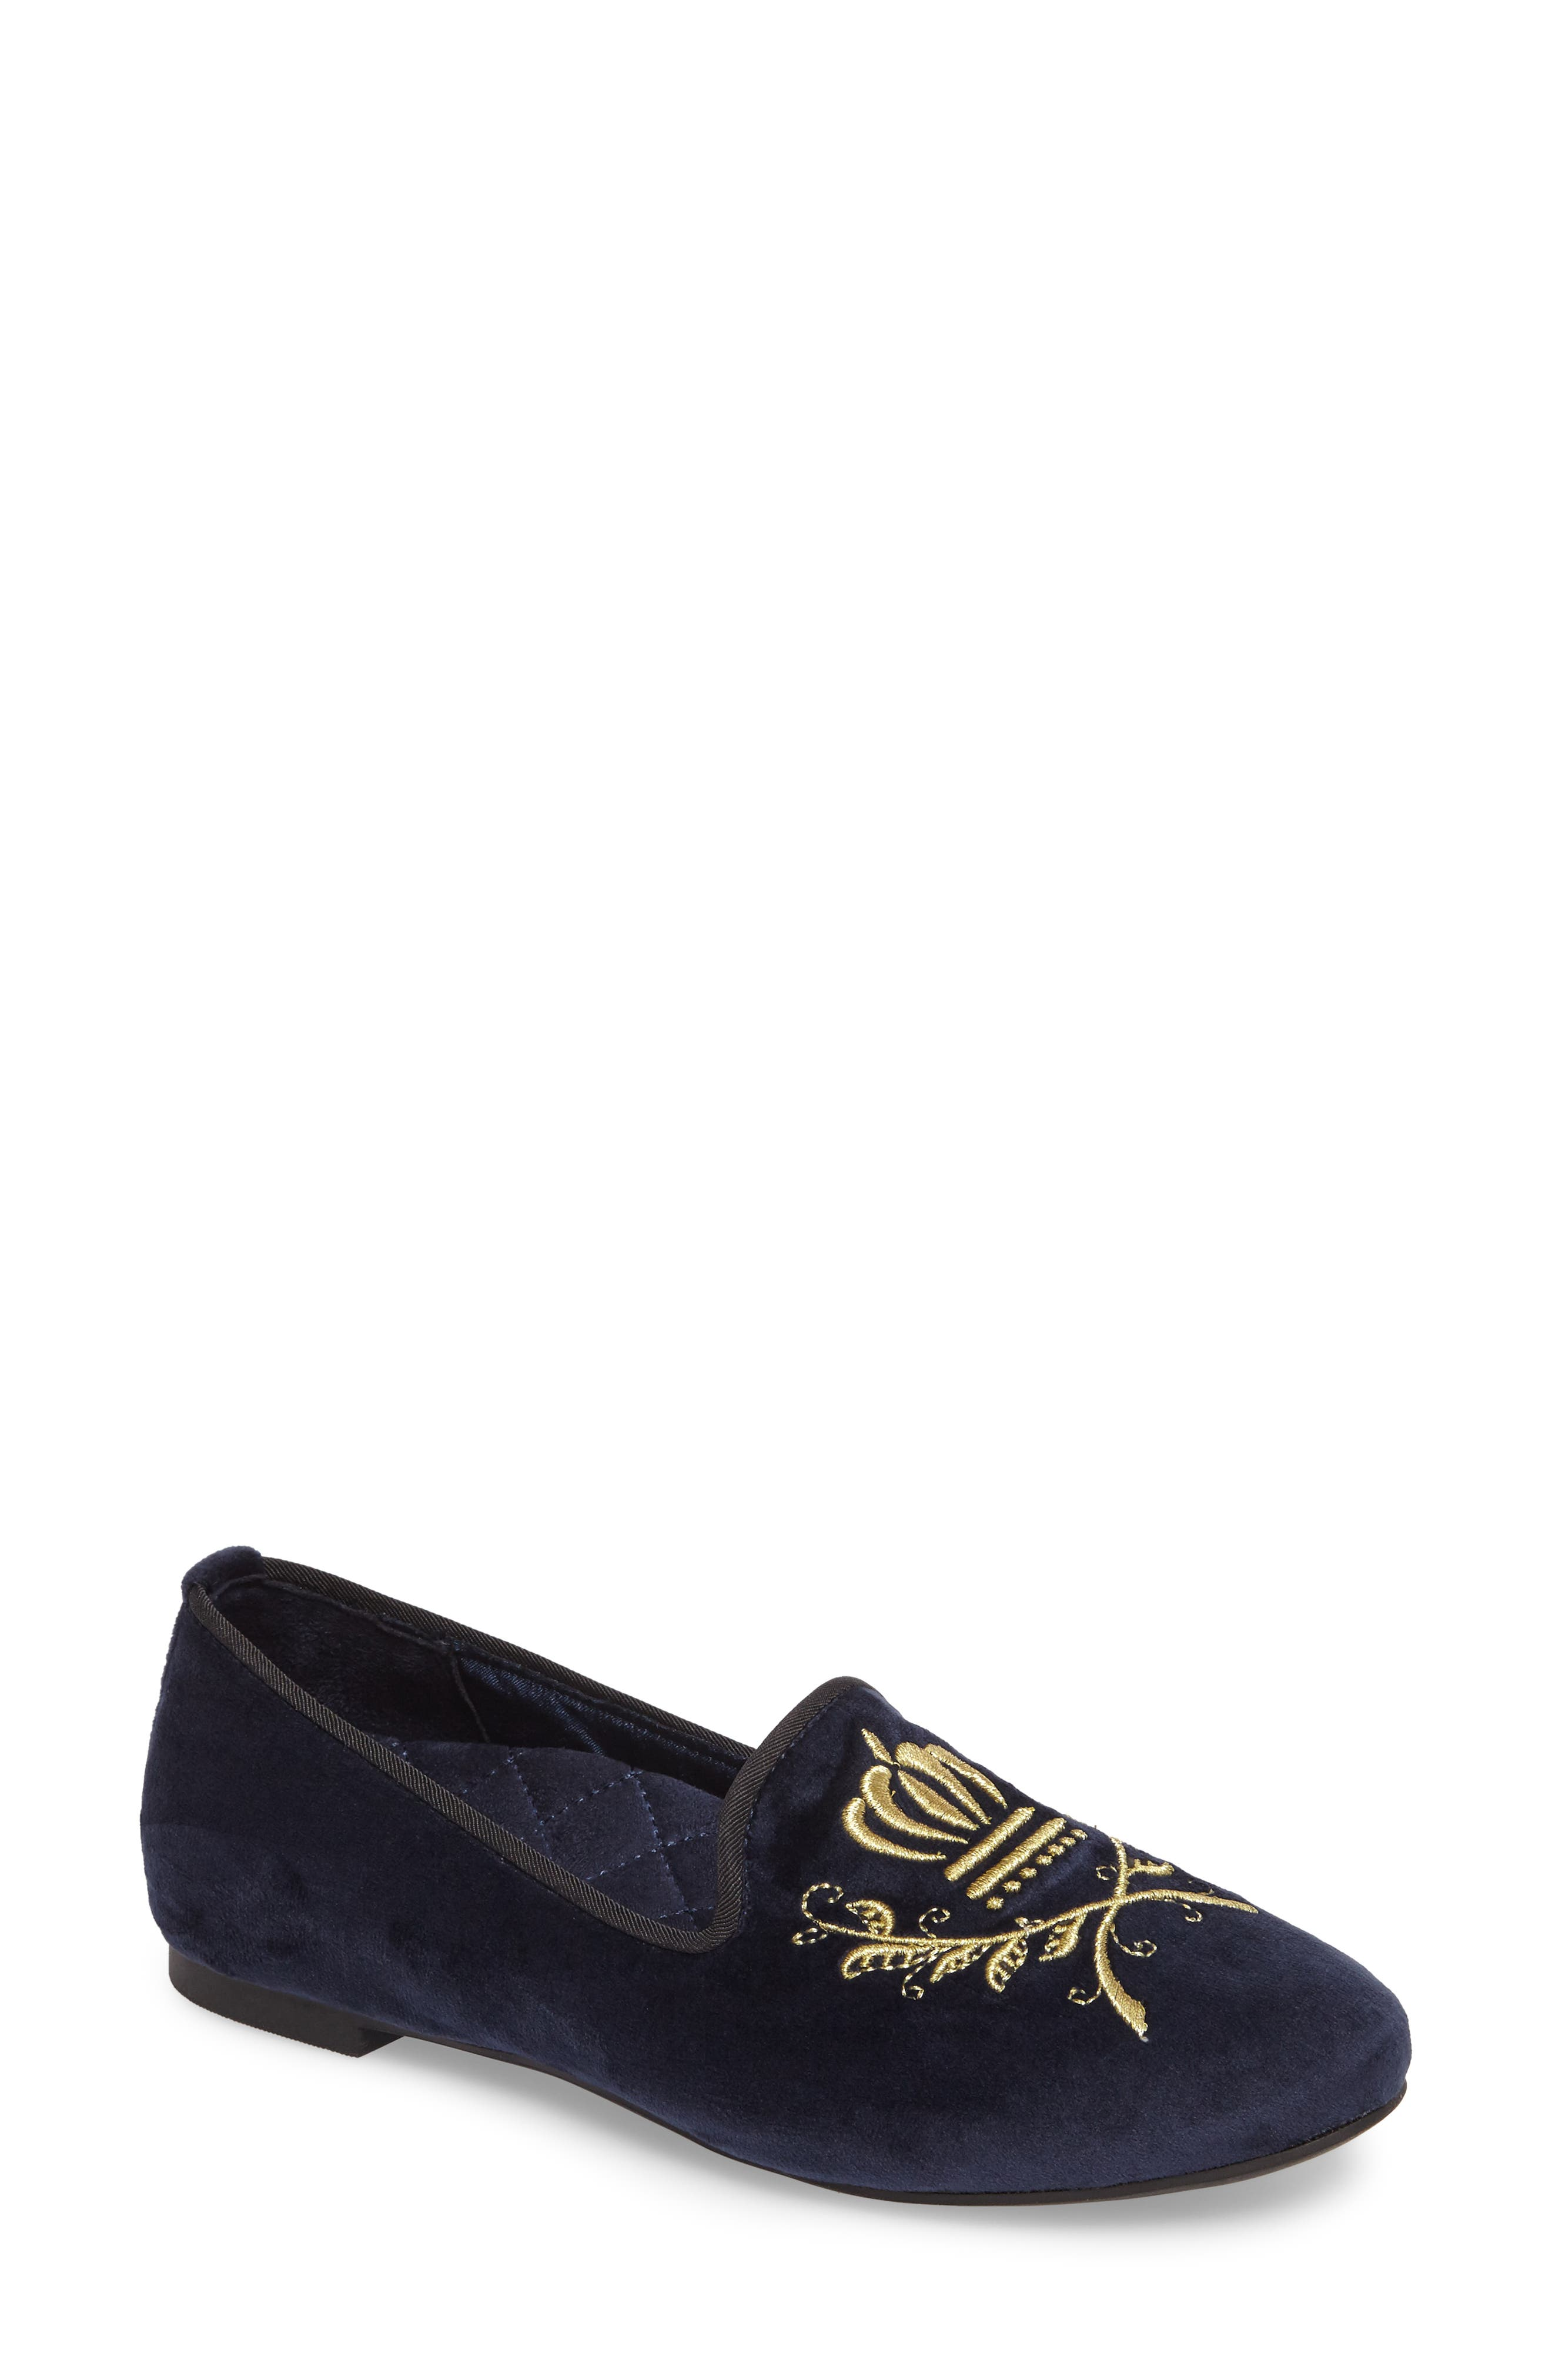 Alternate Image 1 Selected - Vionic Romi Embroidered Flat (Women)